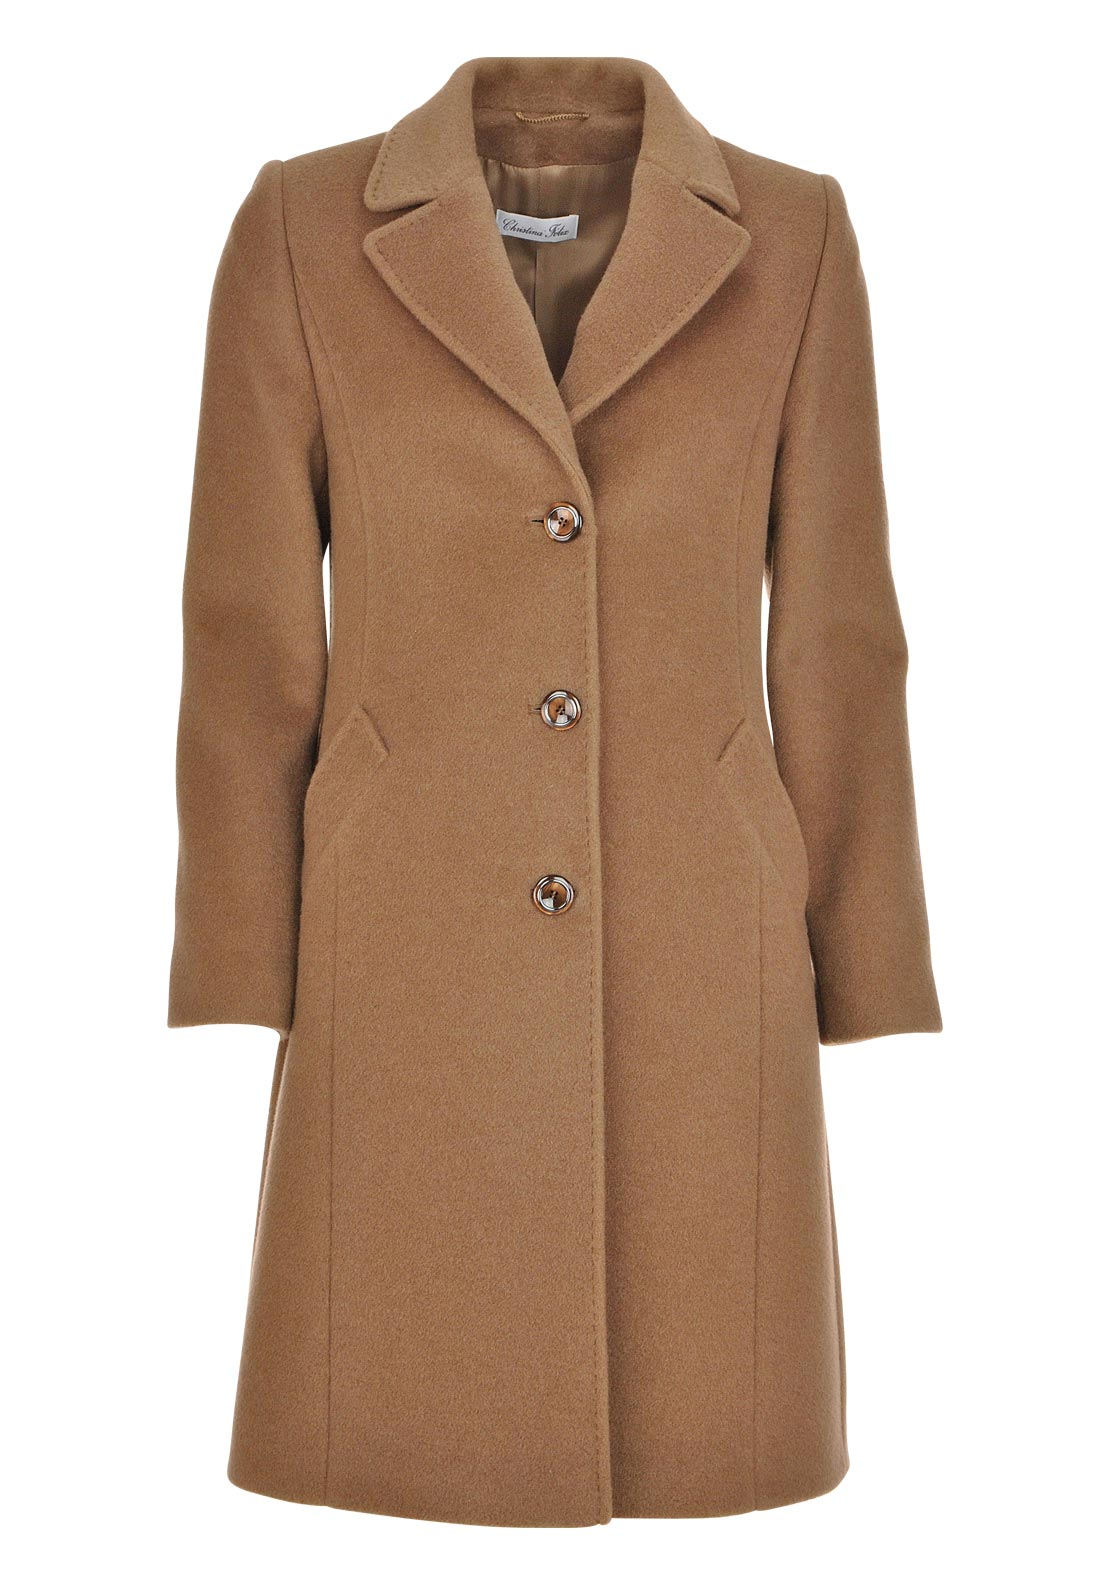 Christina Felix Wool & Cashmere Coat, Brown